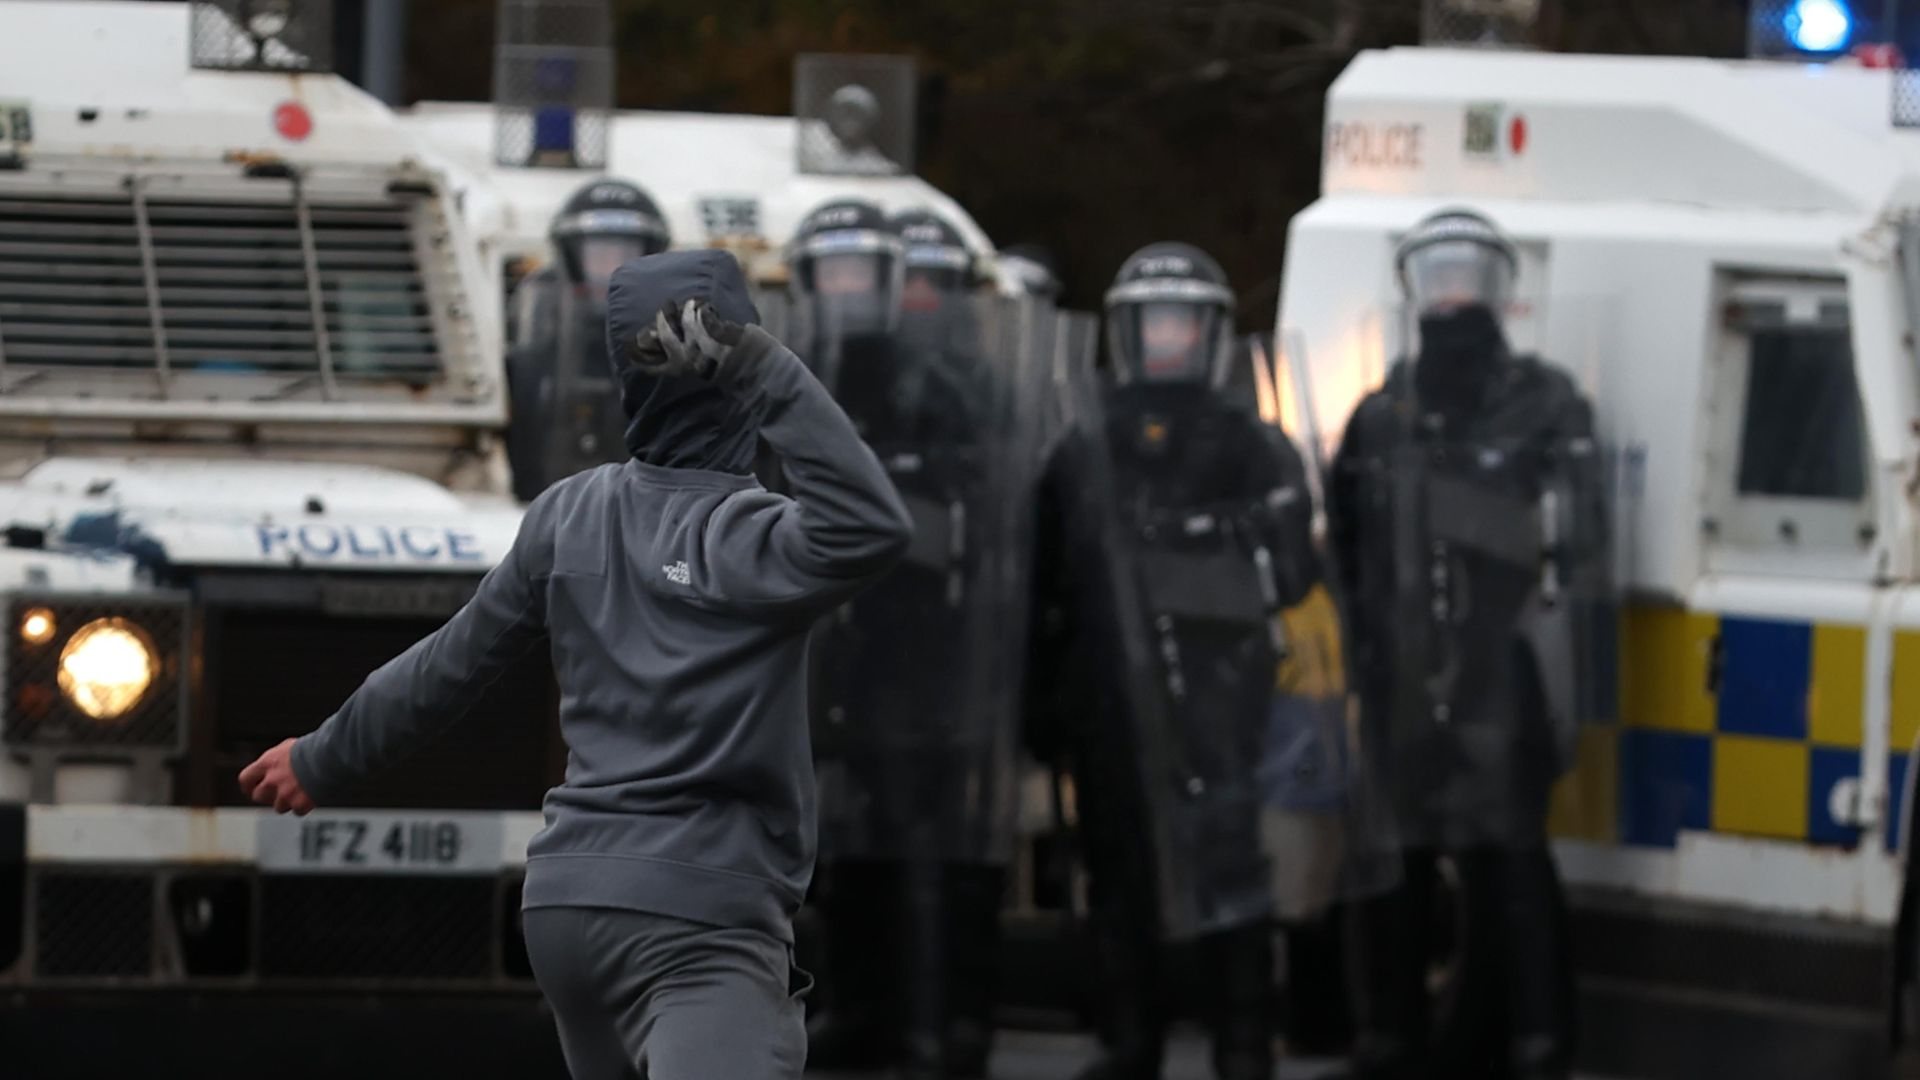 Youths throw stones towards PSNI officers on the Springfield road, during further unrest in Belfast - Credit: PA